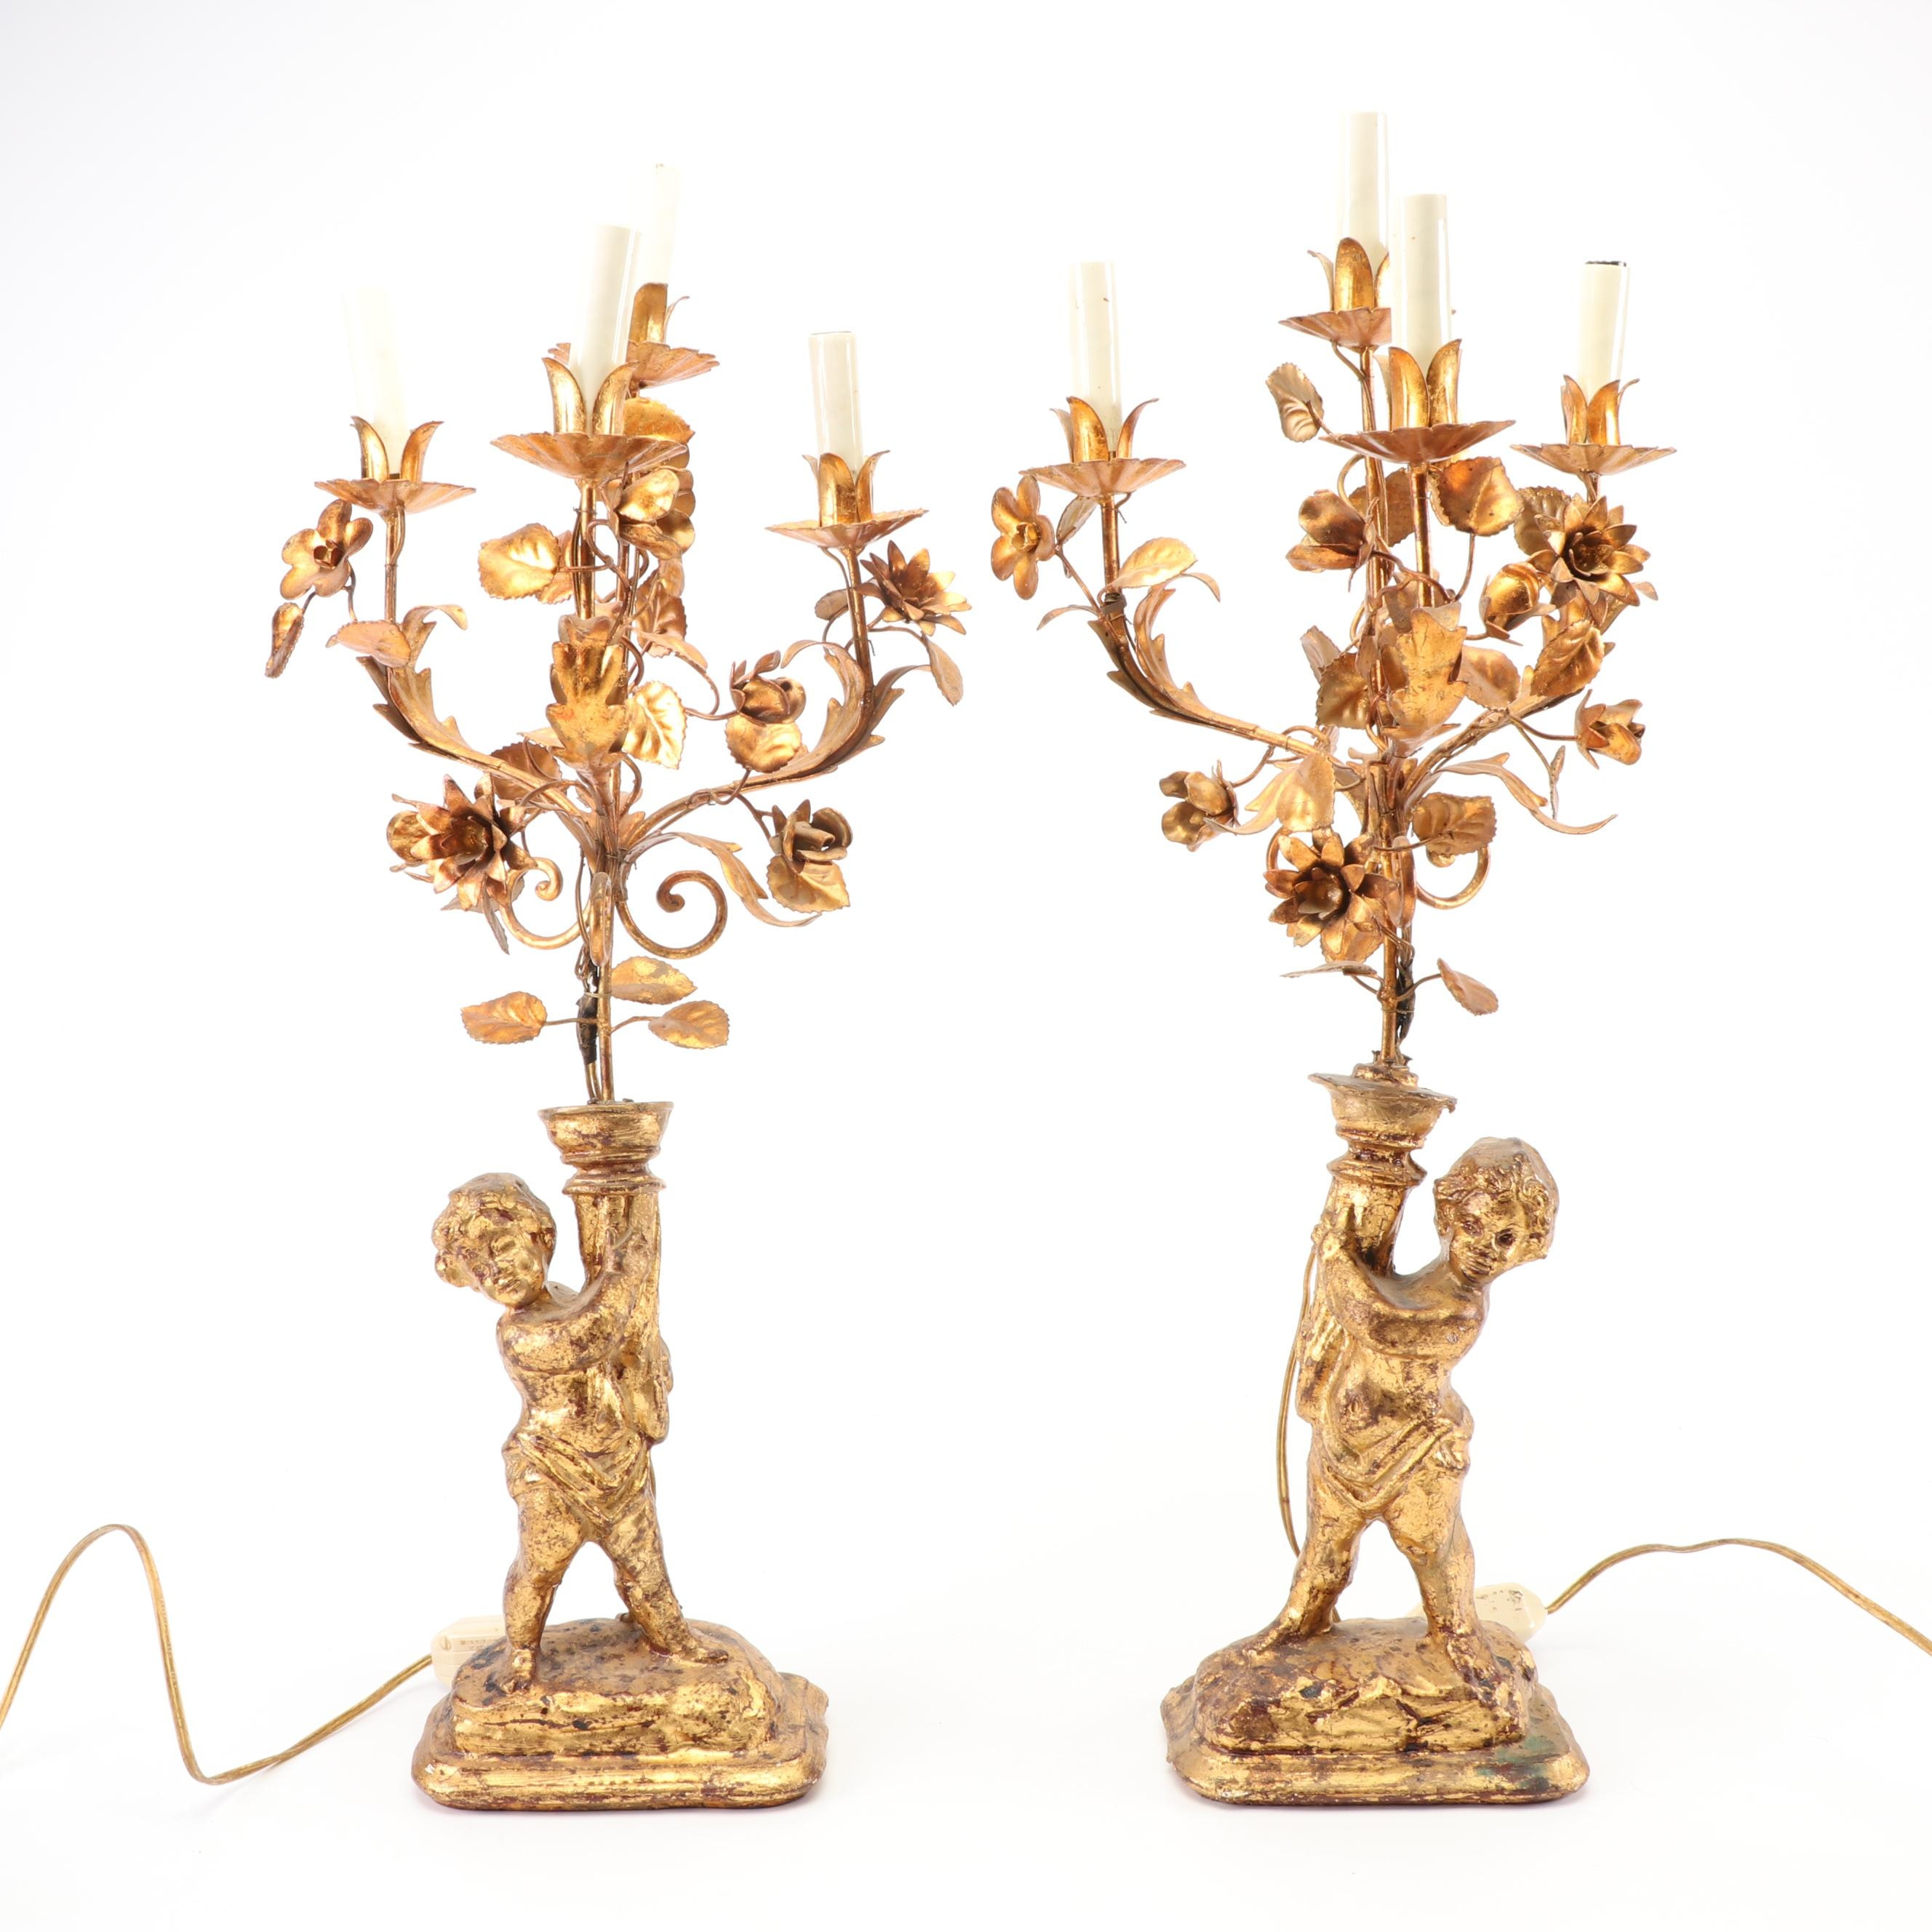 Figural Tole Candelabra Table Lamps